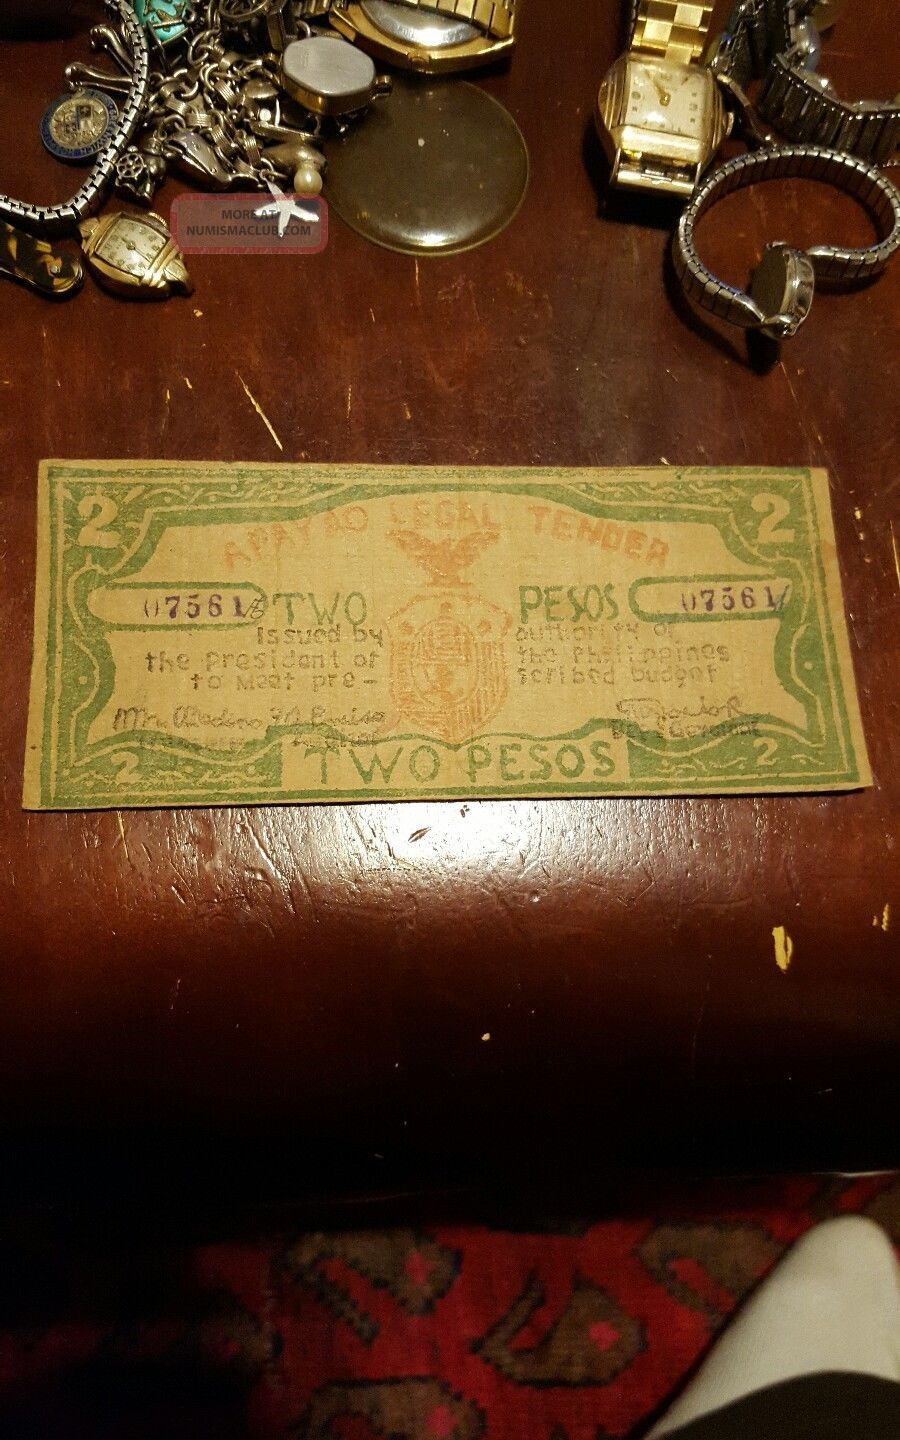 Philippine Apayao 2 Pesos Emergency Script Ww2 Note Only 4k Very Rare Asia photo